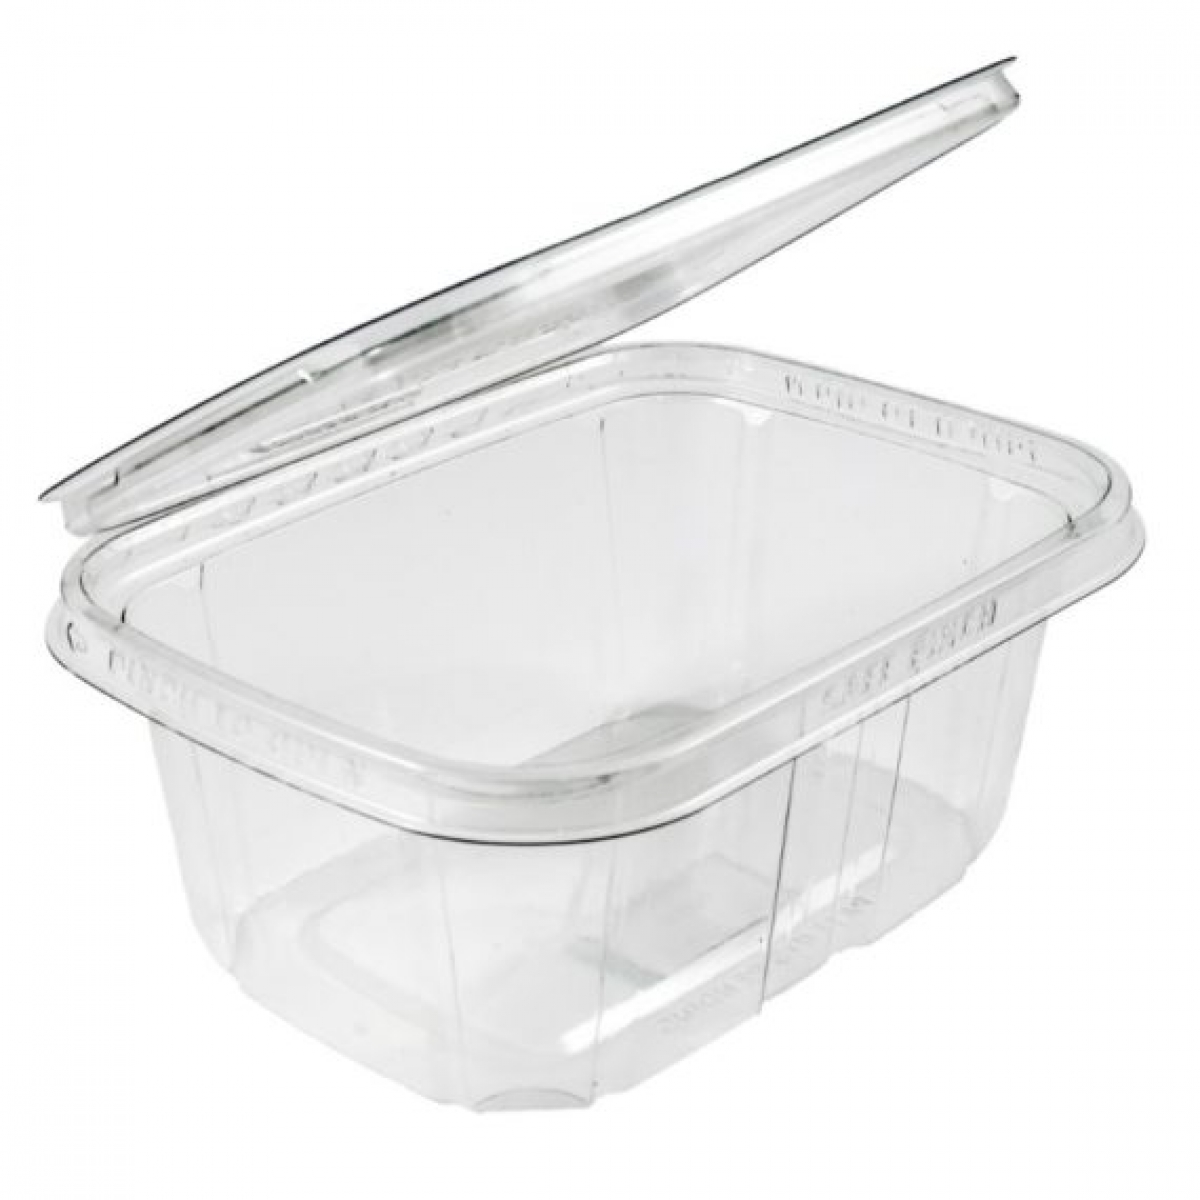 rectangular hinged containers with lid 145*125 / 30 / 250